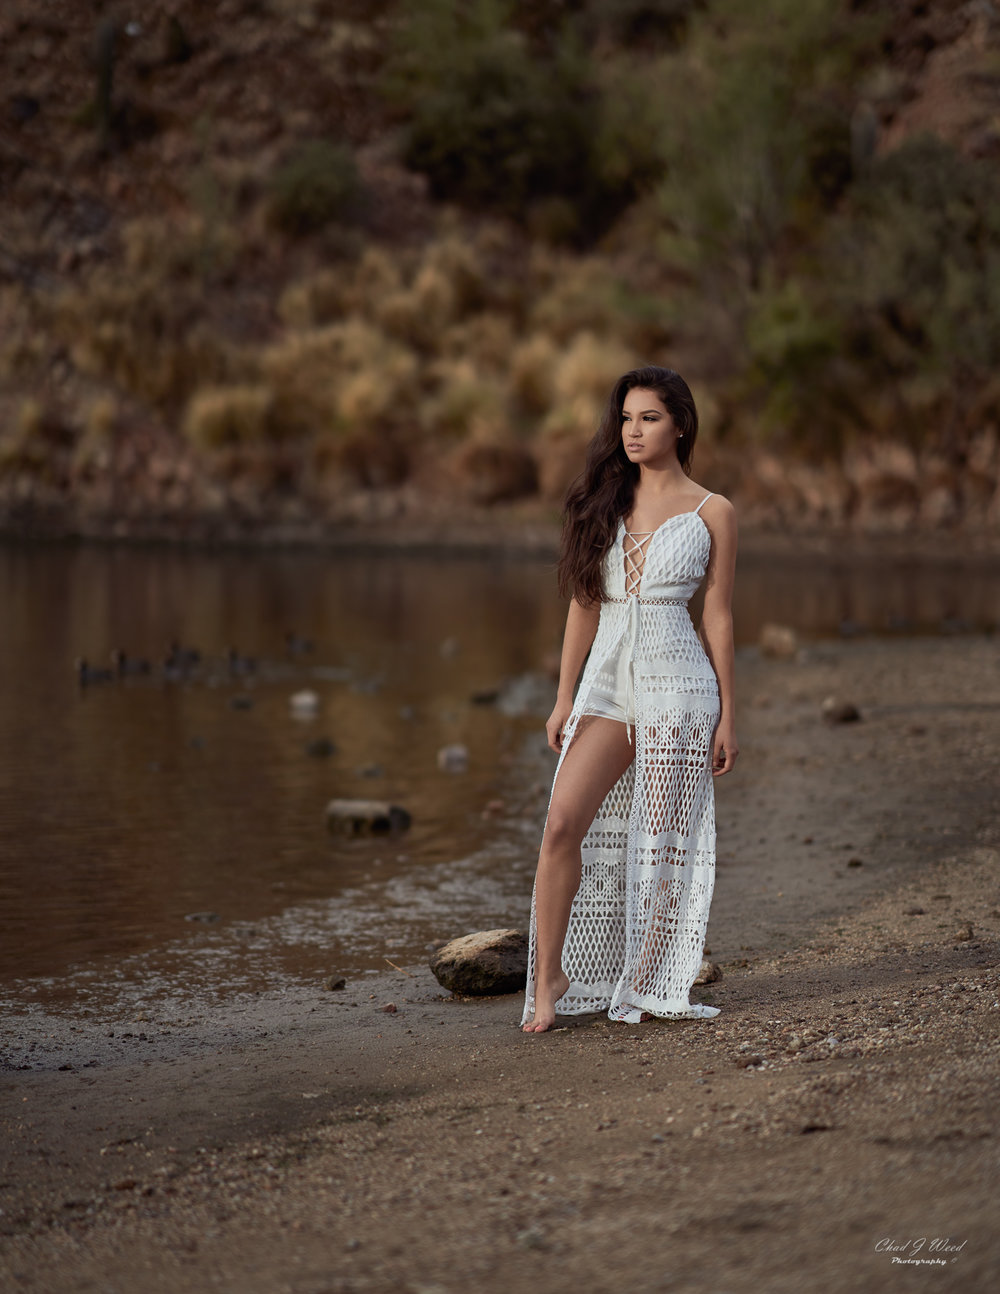 Zari Fashion at Saguaro Lake by Arizona Portrait Photographer Chad Weed